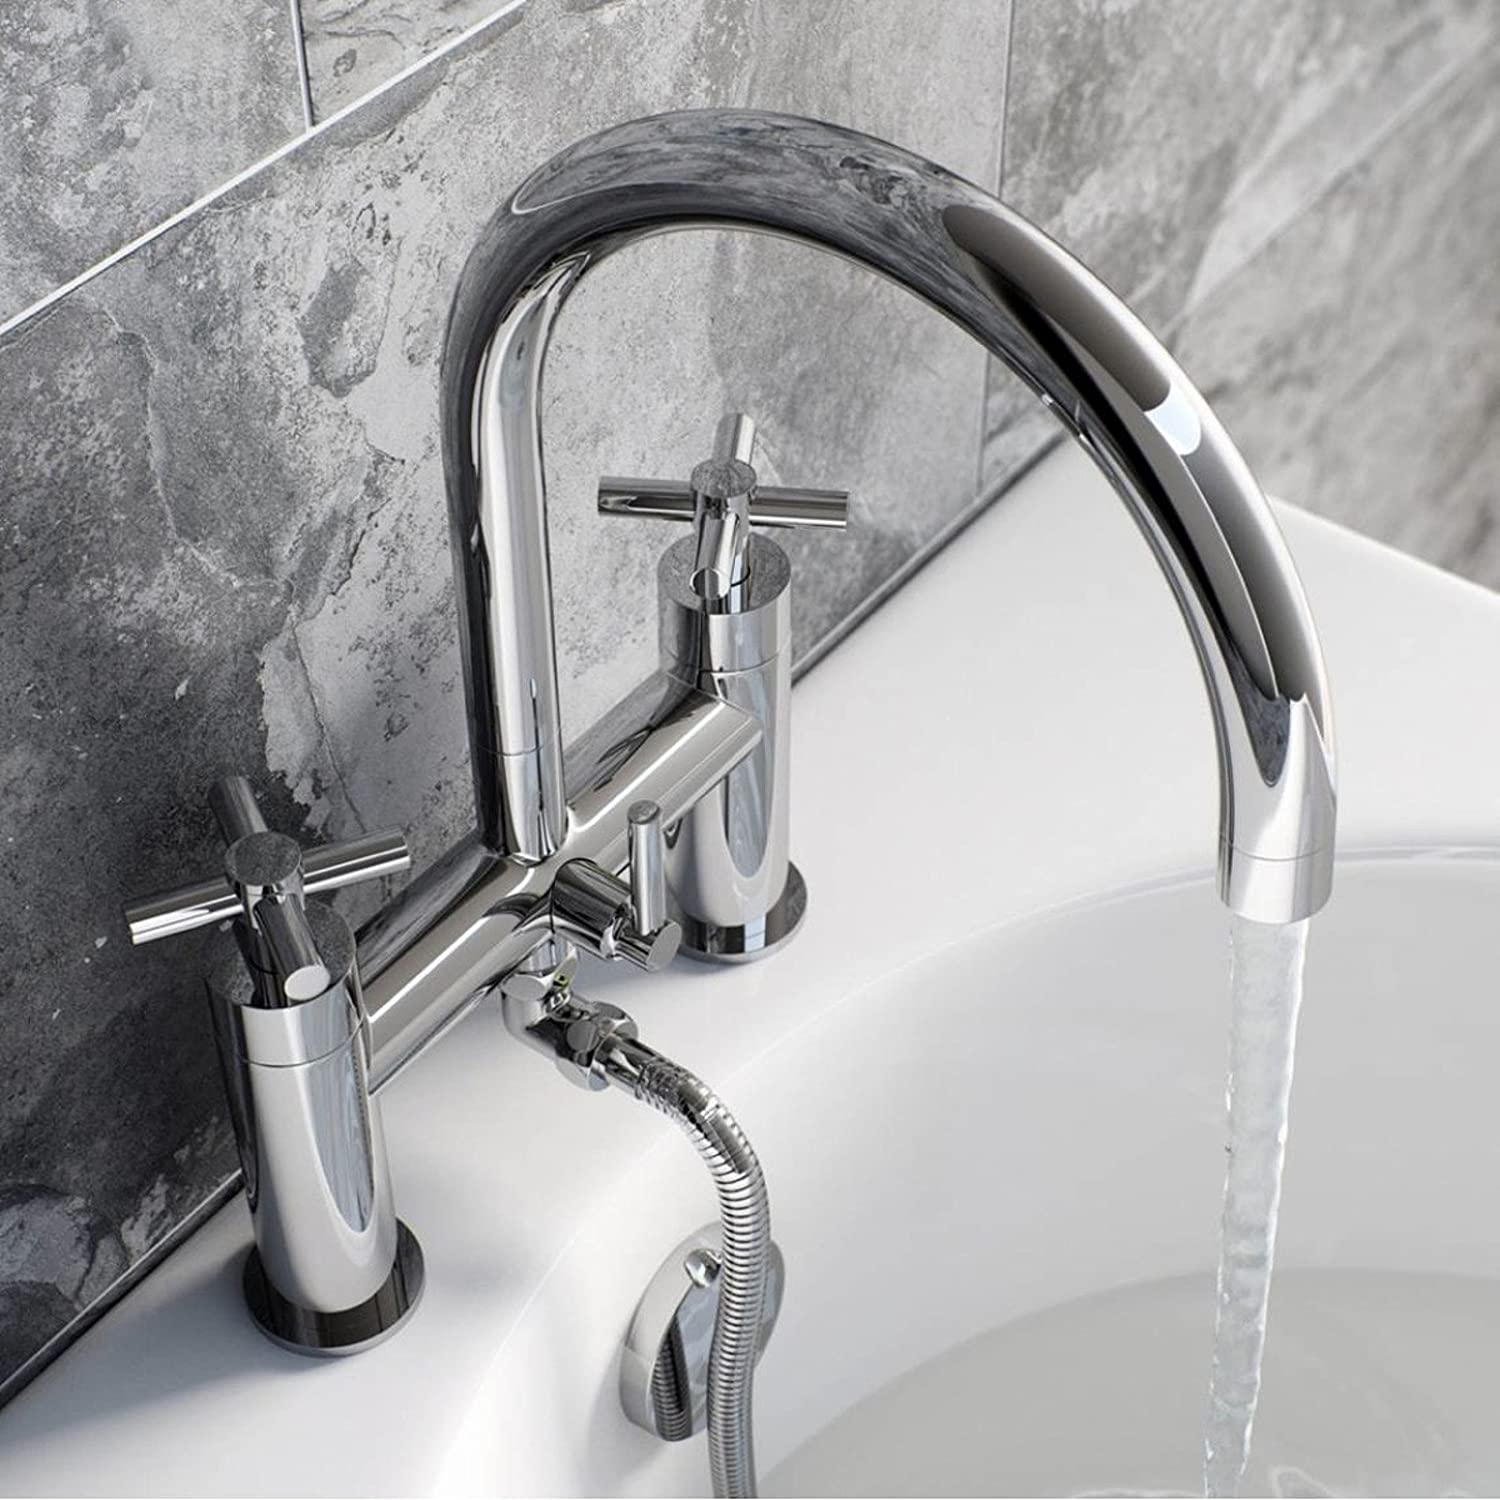 ENKI Modern Cross Handle Bath Filler Mixer Taps Shower Bathroom Chrome Round OXFORD Amazoncouk DIY Tools